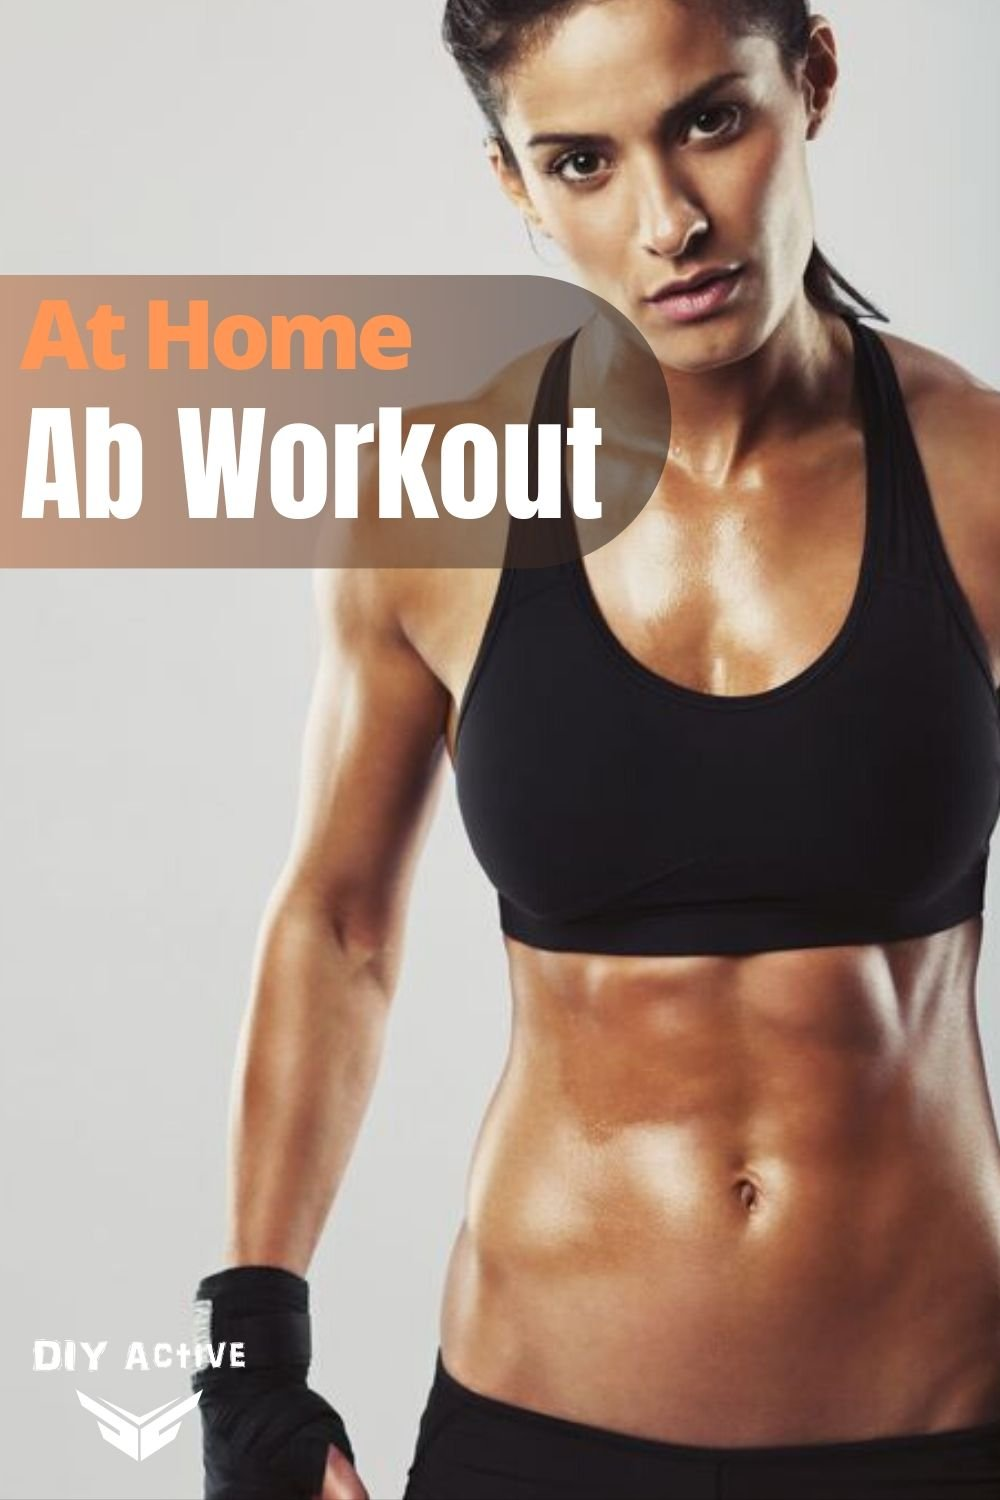 At Home Ab Workout Why Work Out the Core